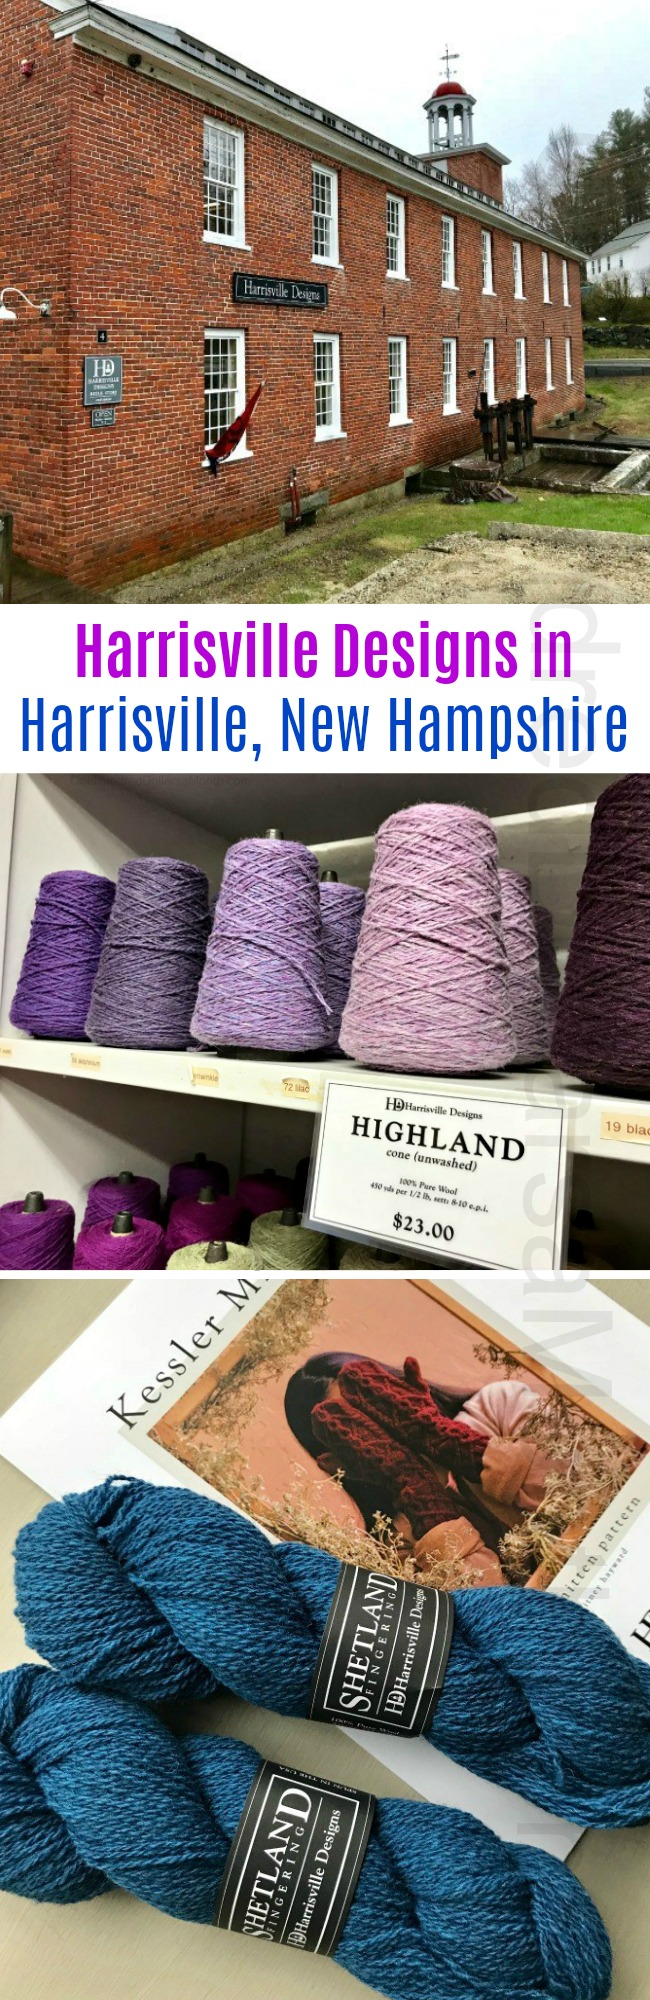 A Trip to Harrisville Designs in Harrisville, New Hampshire + a Giveaway